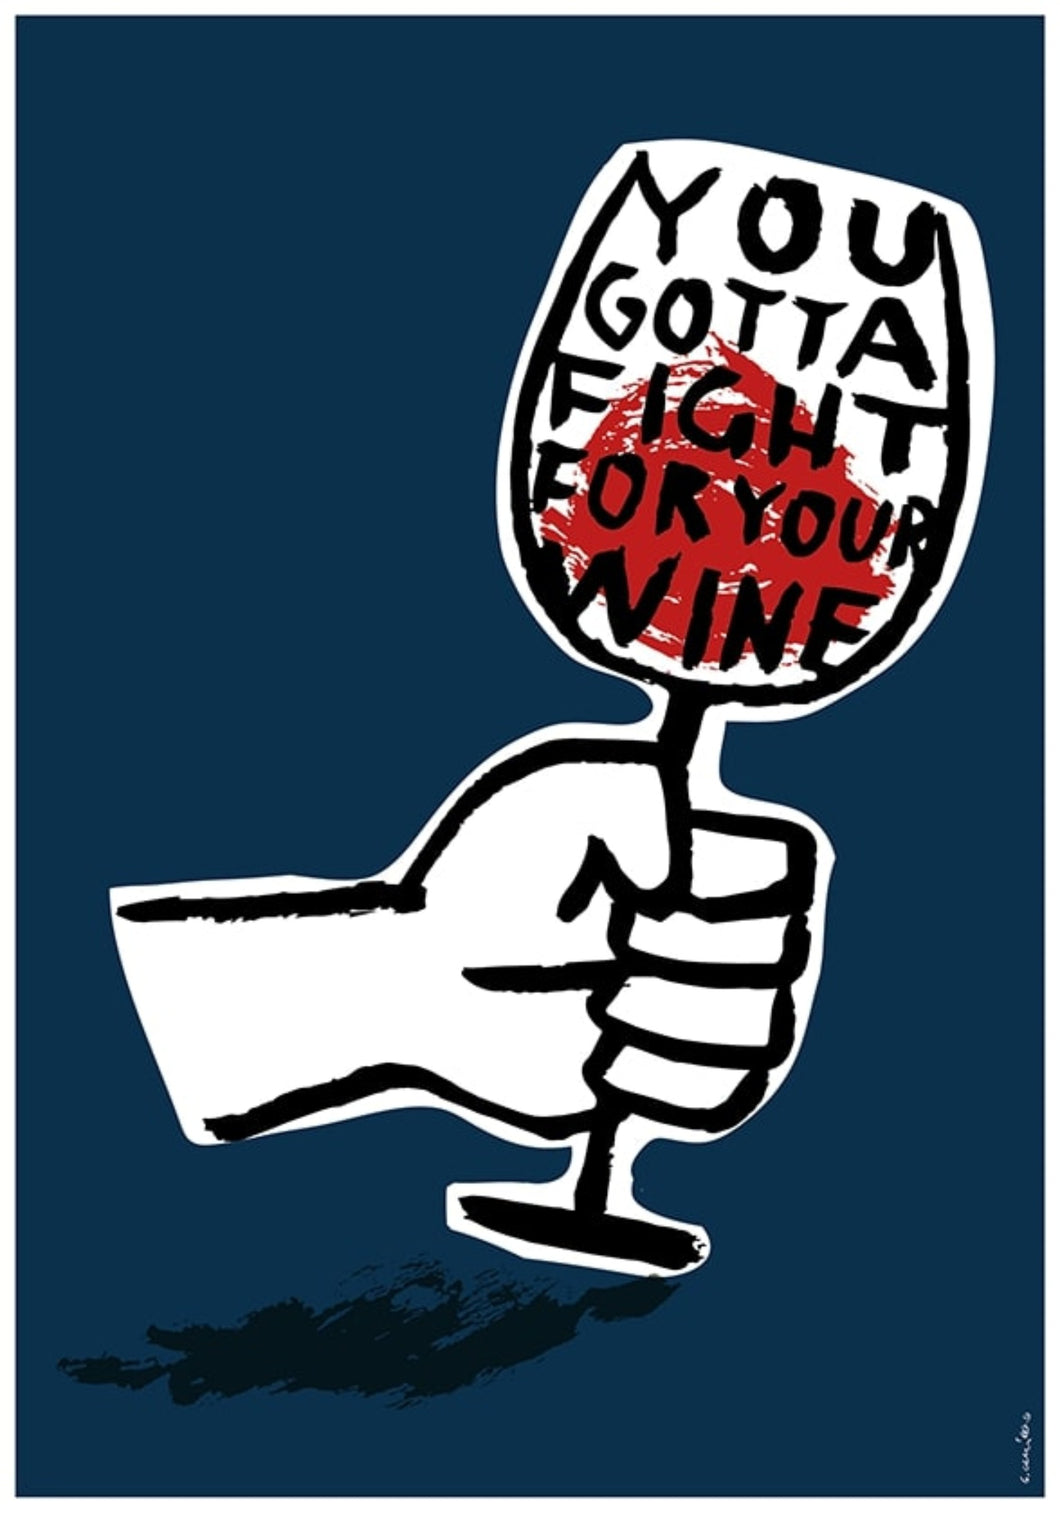 MY POSTER SUCKS-fight for your wine